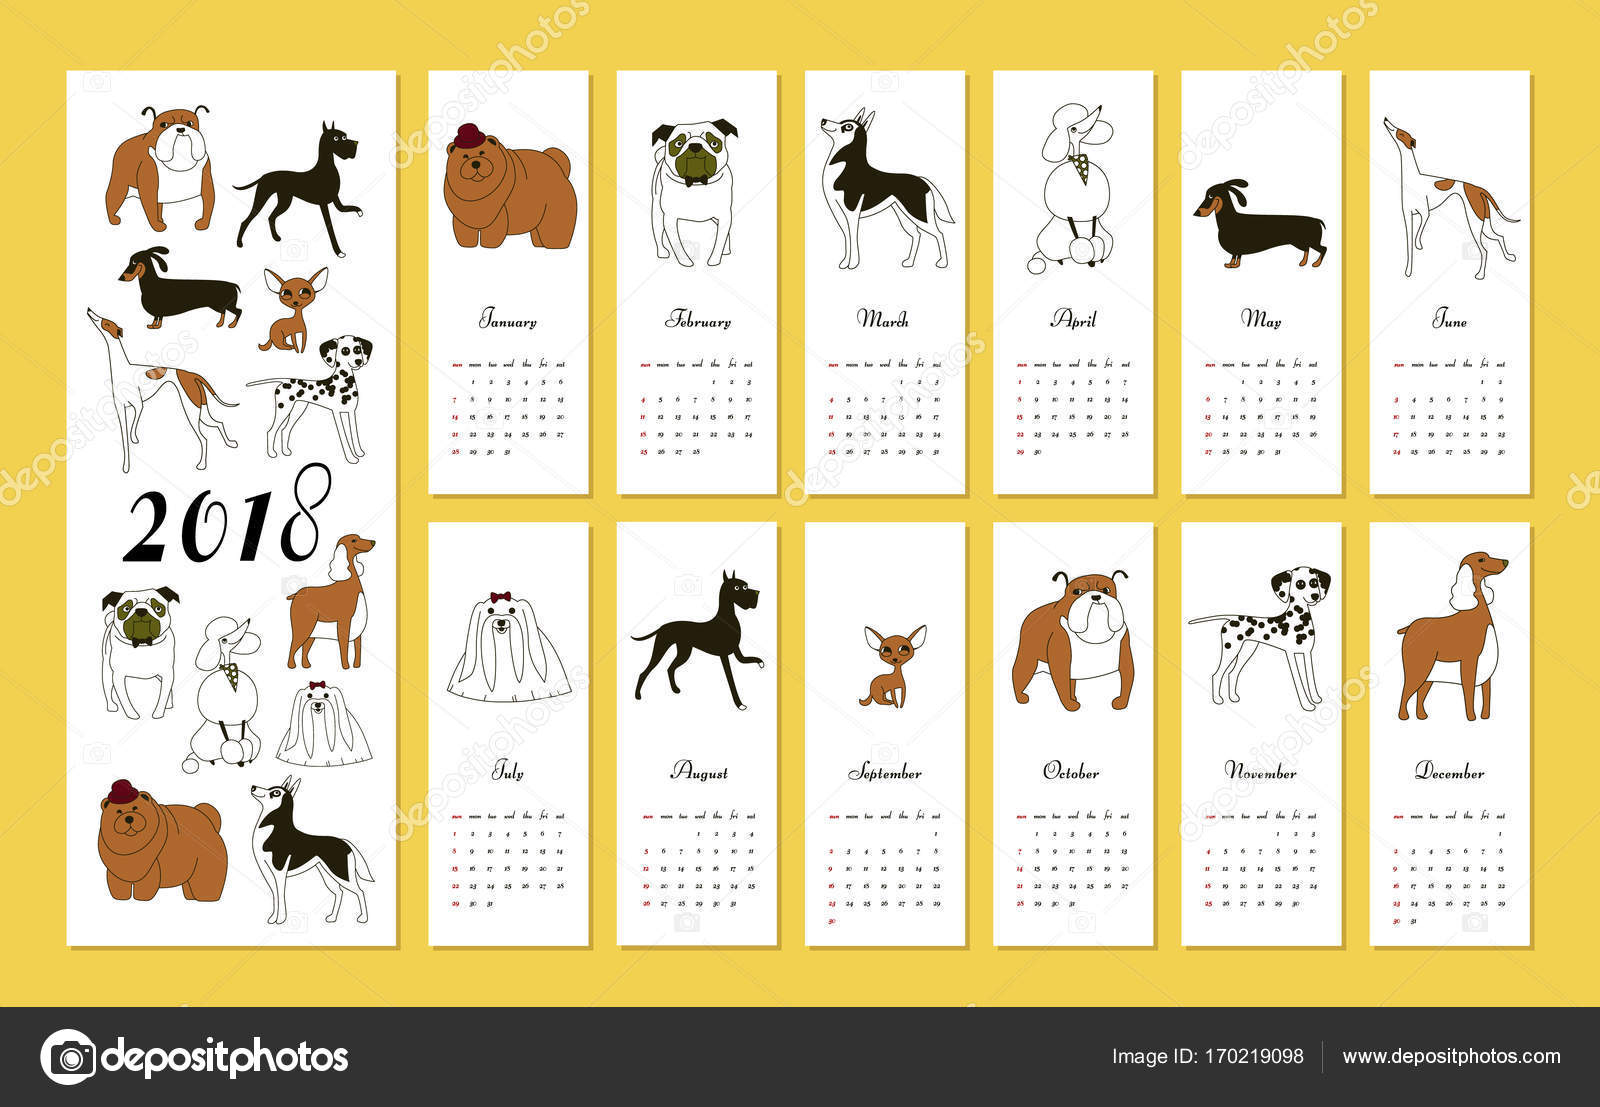 Chinese Calendar Illustration : Monthly creative calendar with dog breeds concept